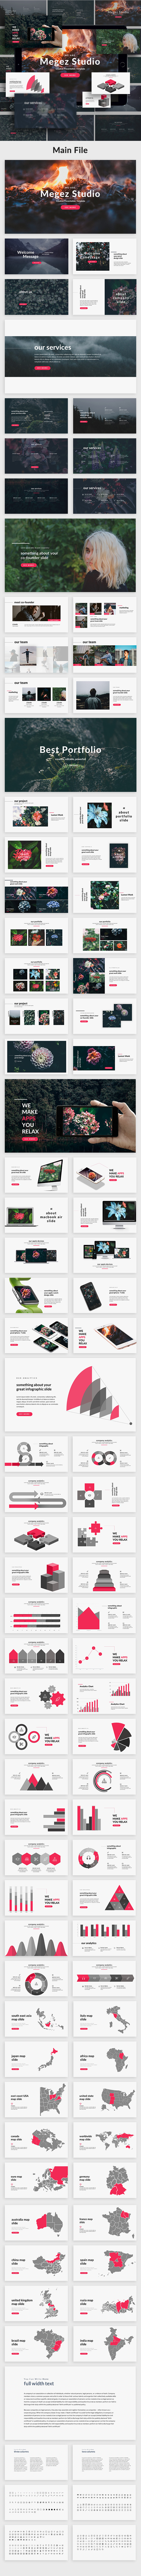 Megez - Creative Keynote Template - Creative Keynote Templates